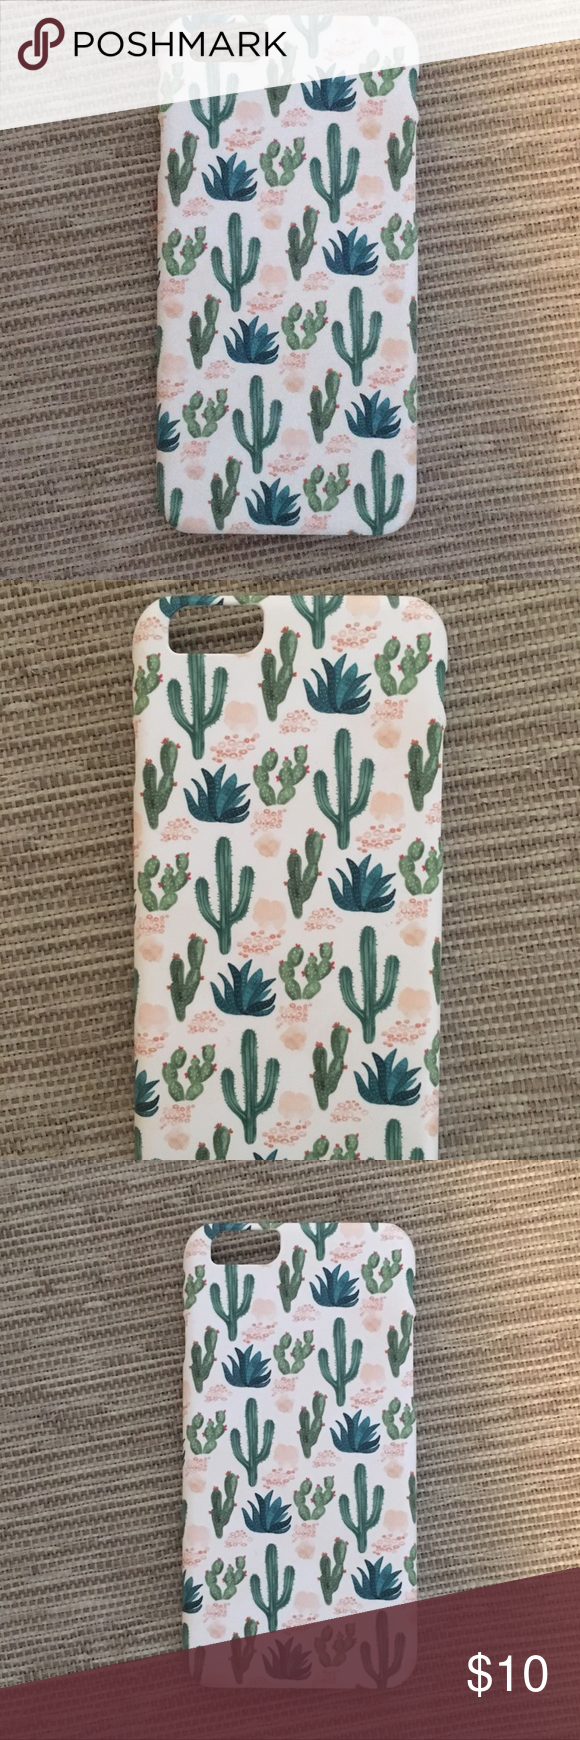 Cactus iPhone 6 6S Case Super cute iPhone 6 6s case Brand new and never used Cacti ferns and suc Cactus iPhone 6 6S Case Super cute iPhone 6 6s case Brand new and never u...